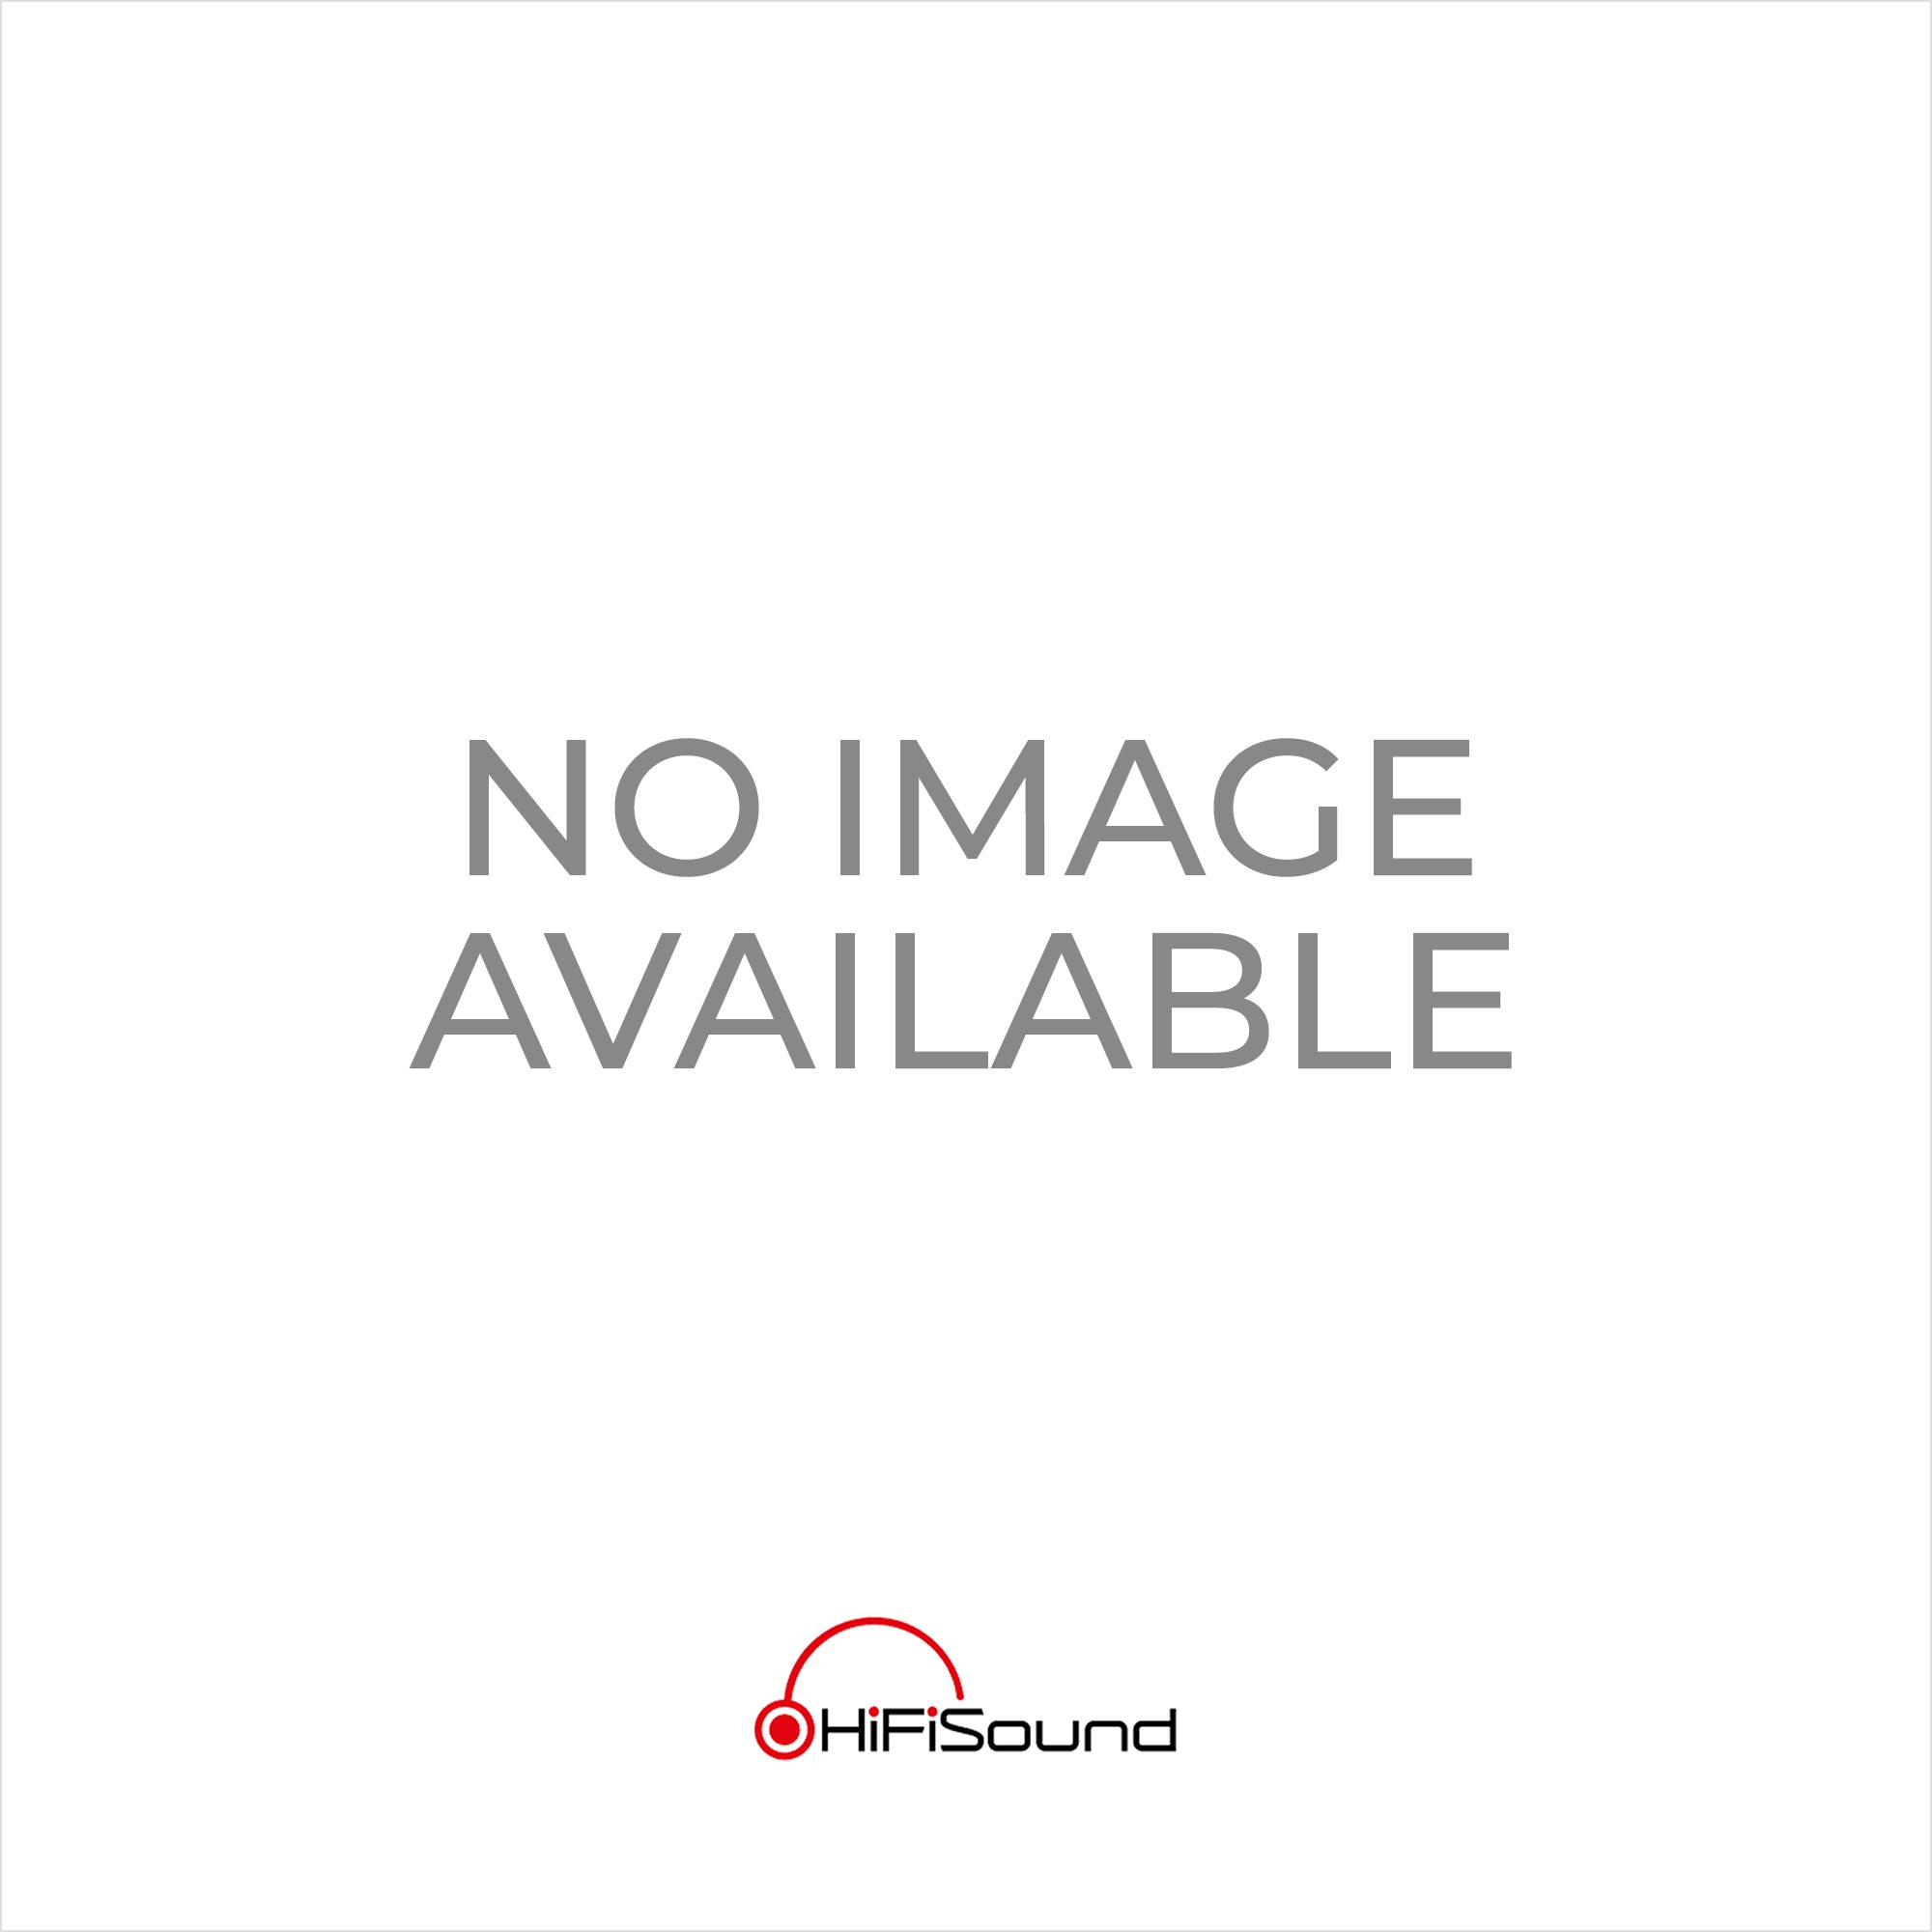 Sovereign MK3-1 Turntable